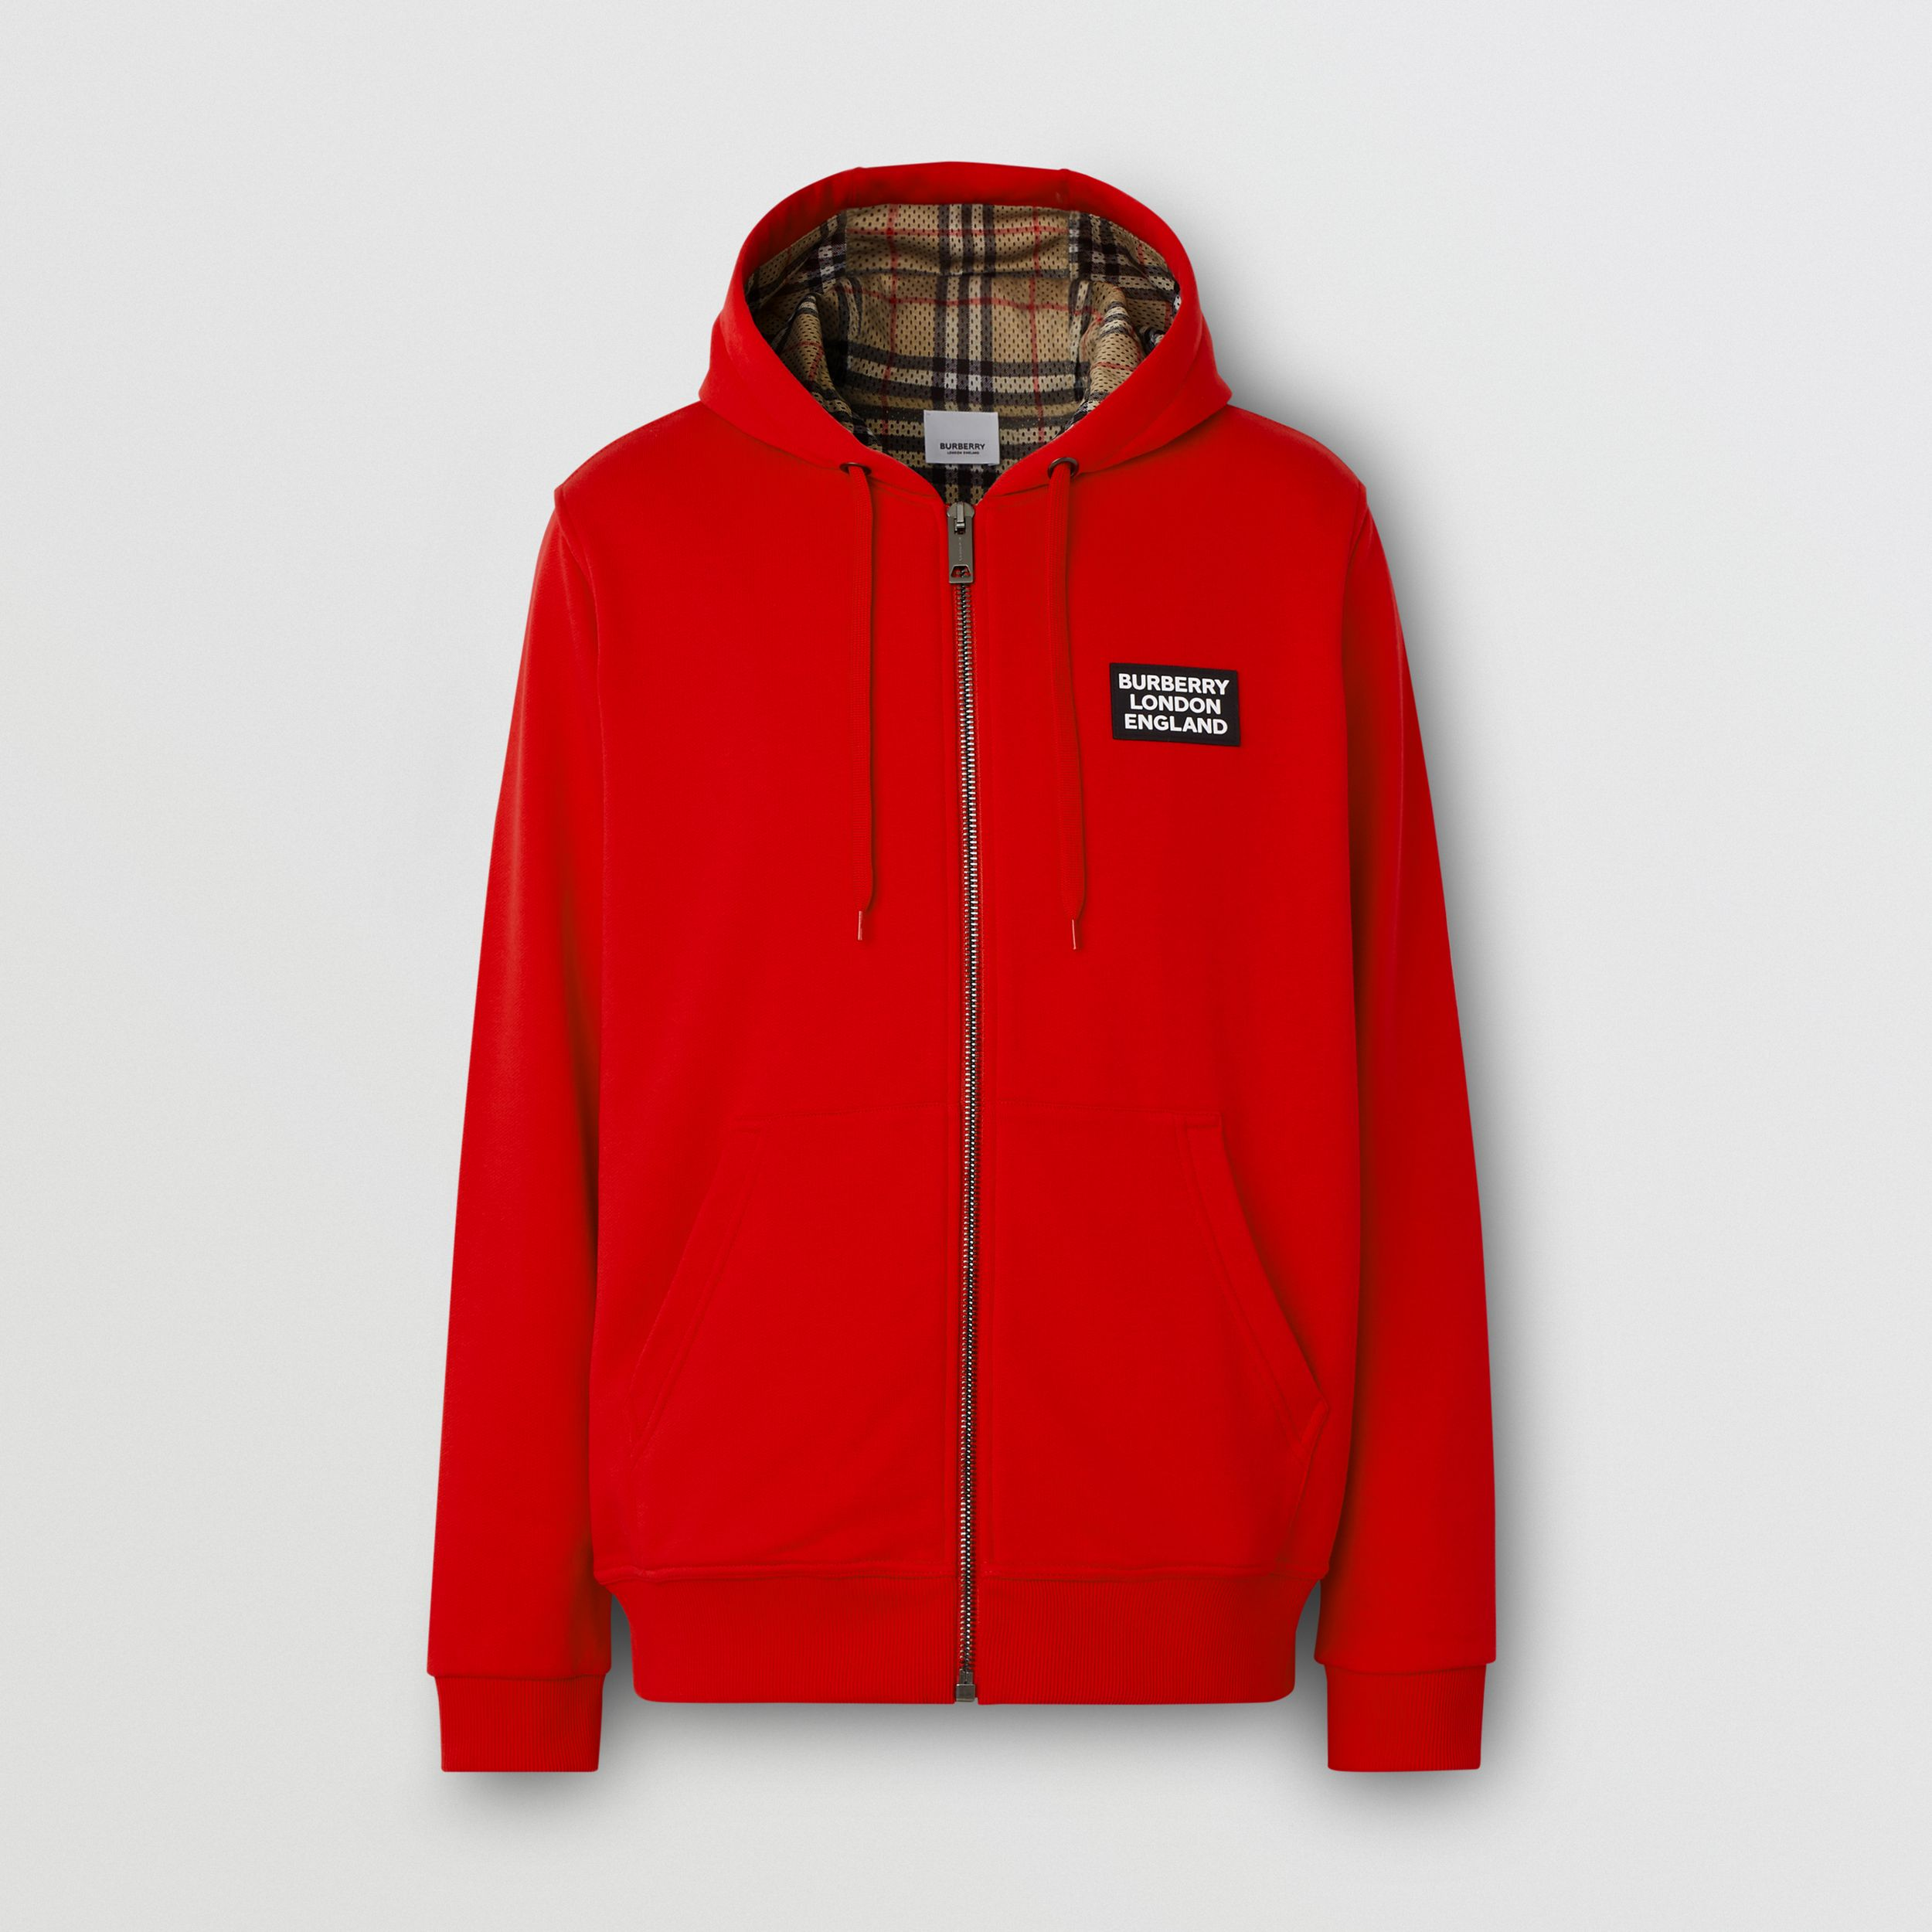 Logo Appliqué Cotton Hooded Top in Bright Red - Men | Burberry - 1